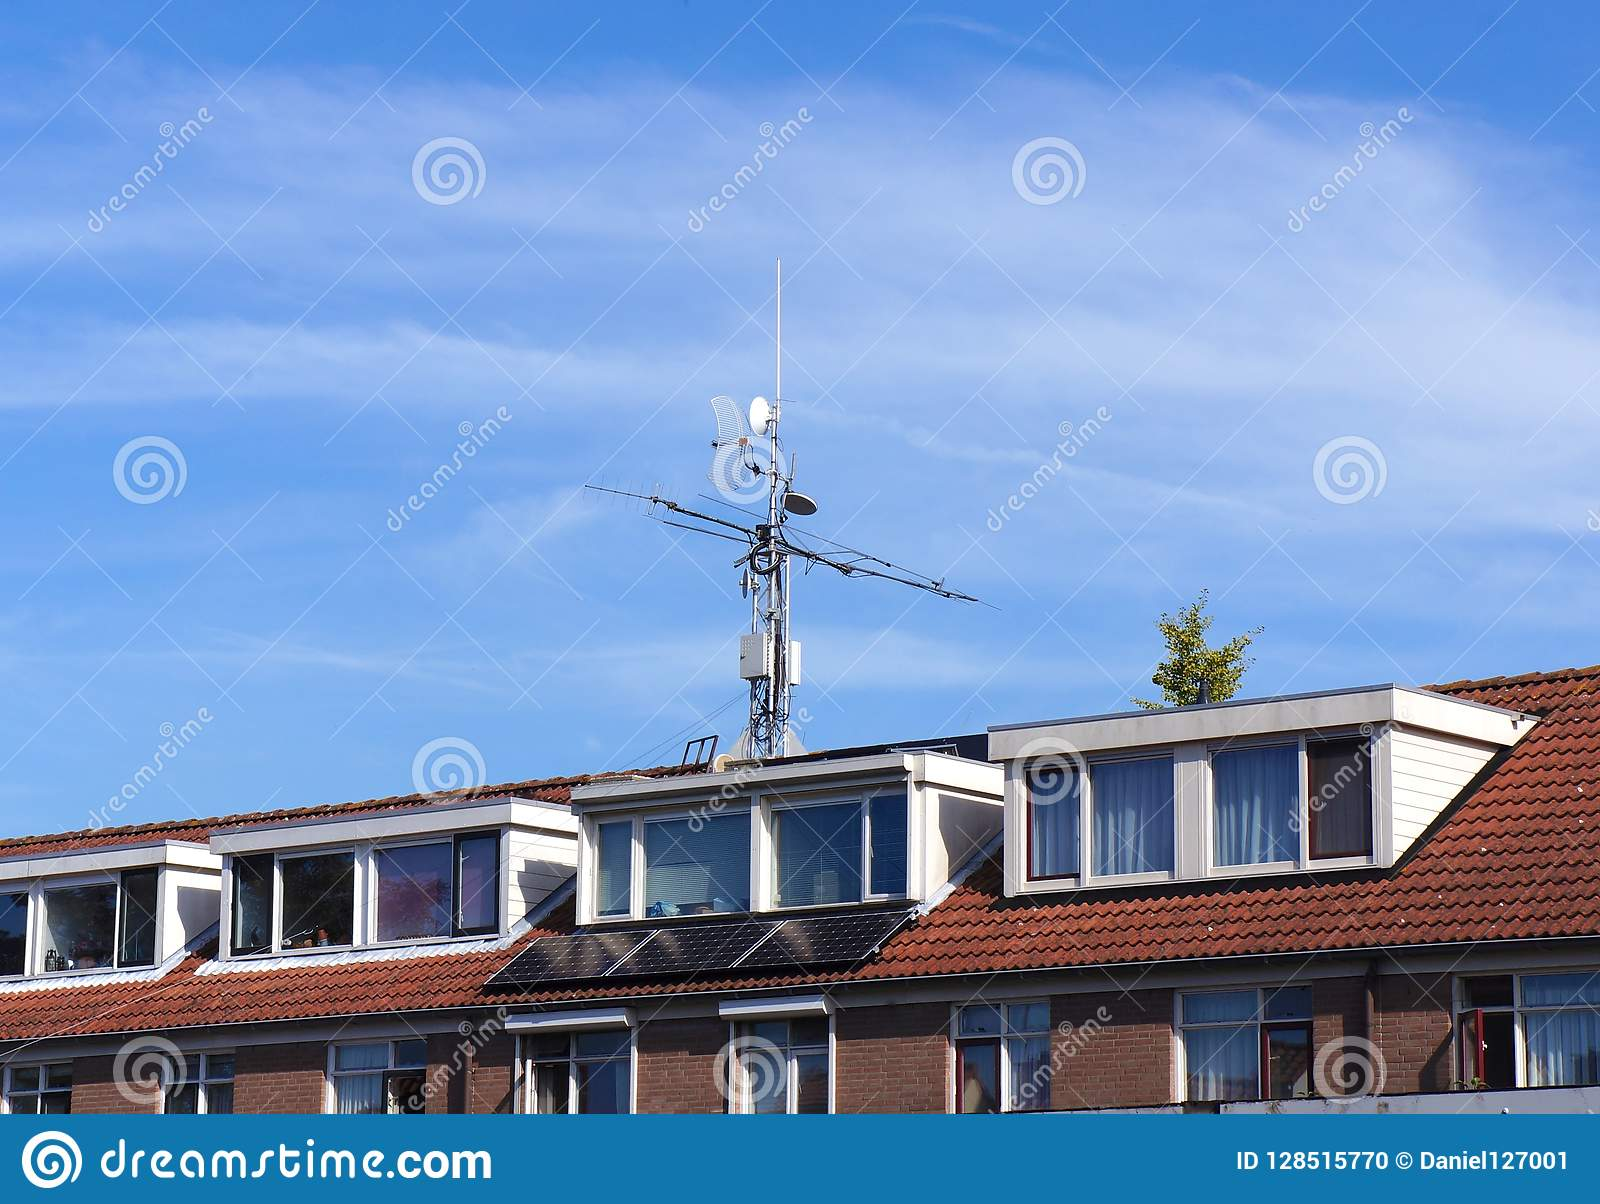 Telecommunication equipment on a rooftop